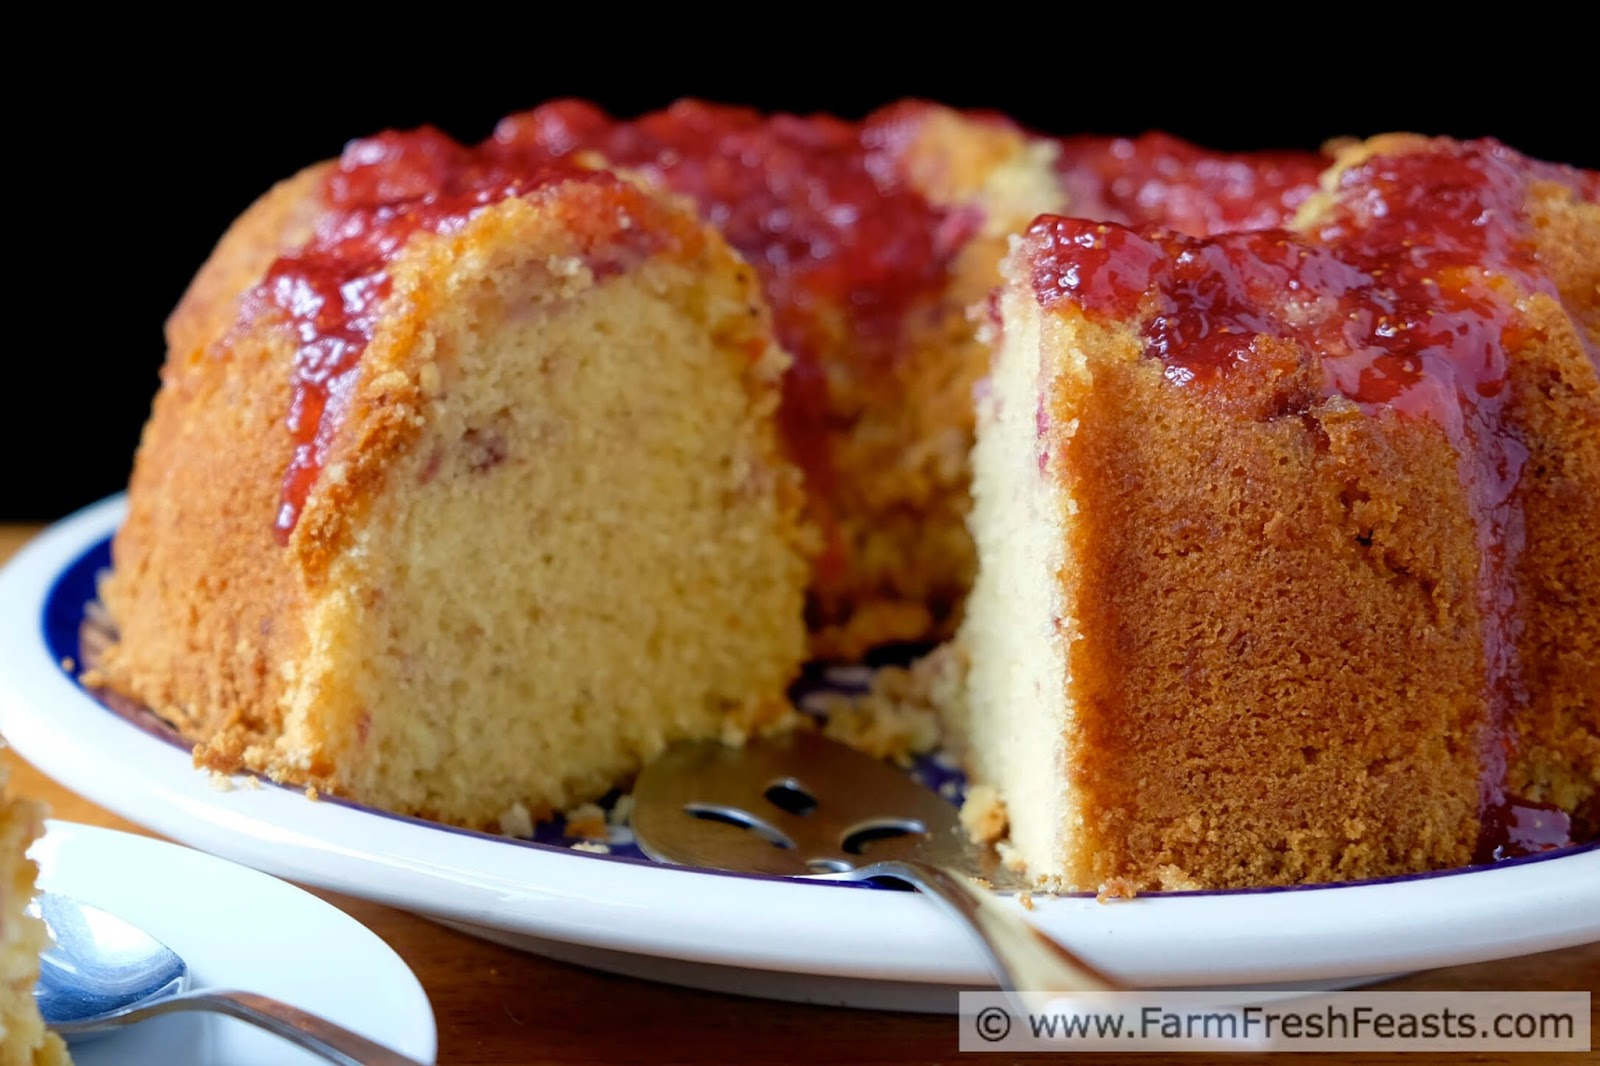 http://www.farmfreshfeasts.com/2015/04/strawberry-lemon-bundt-cake.html